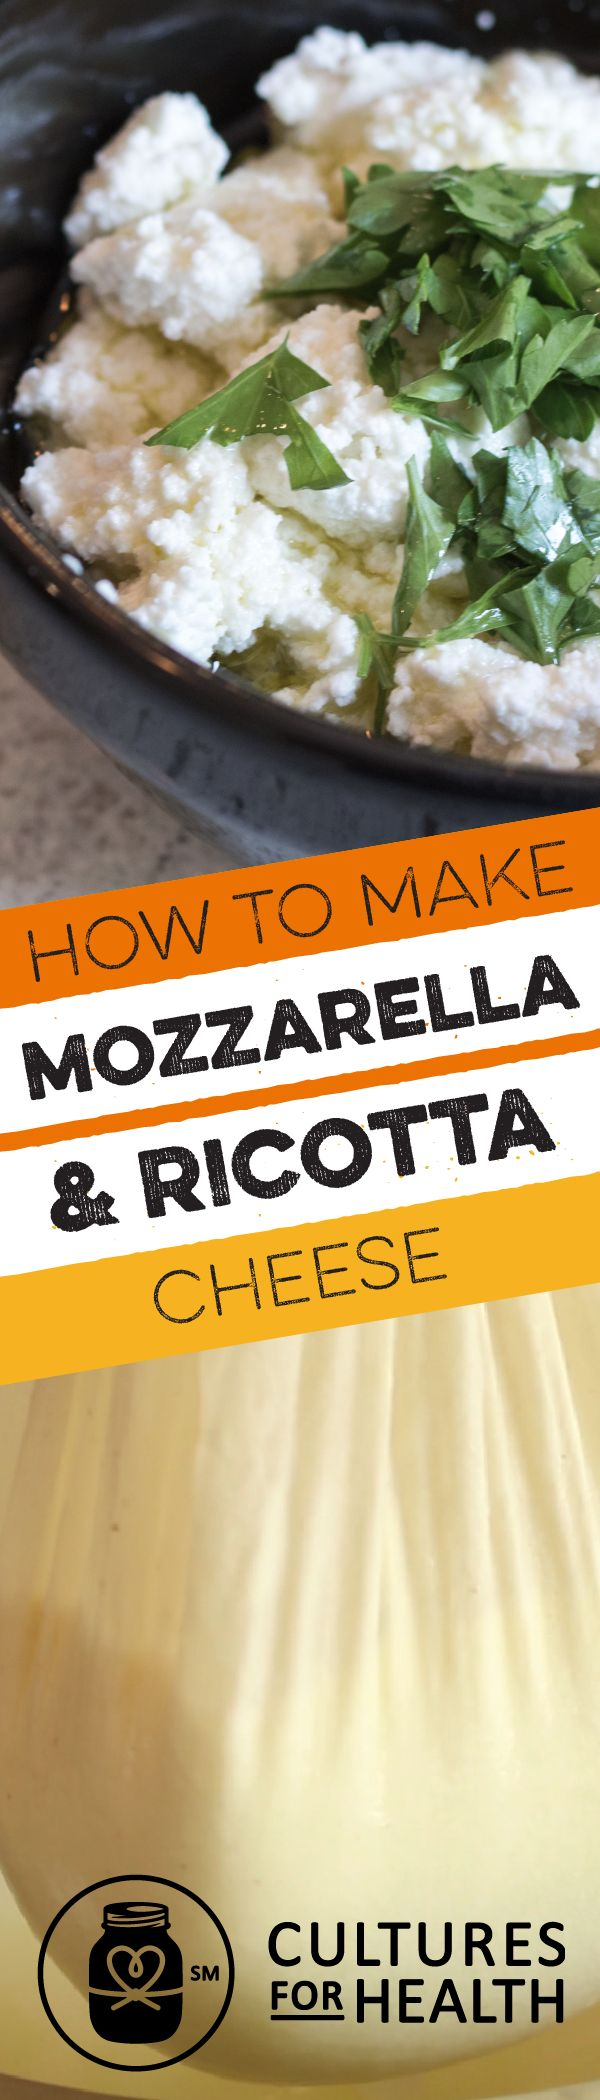 Make authentic Italian cuisine with this Mozzarella and Ricotta Cheese Kit, perfect for beginning cheese makers and even kids. Start a new hobby or create quick, easy cheeses – homemade Mozzarella takes just 30 minutes. This kit contains all you need to make up to 12 lbs. of -Mozzarella, as much as 48 lbs. of Ricotta, or a tasty combination of both - just add milk.